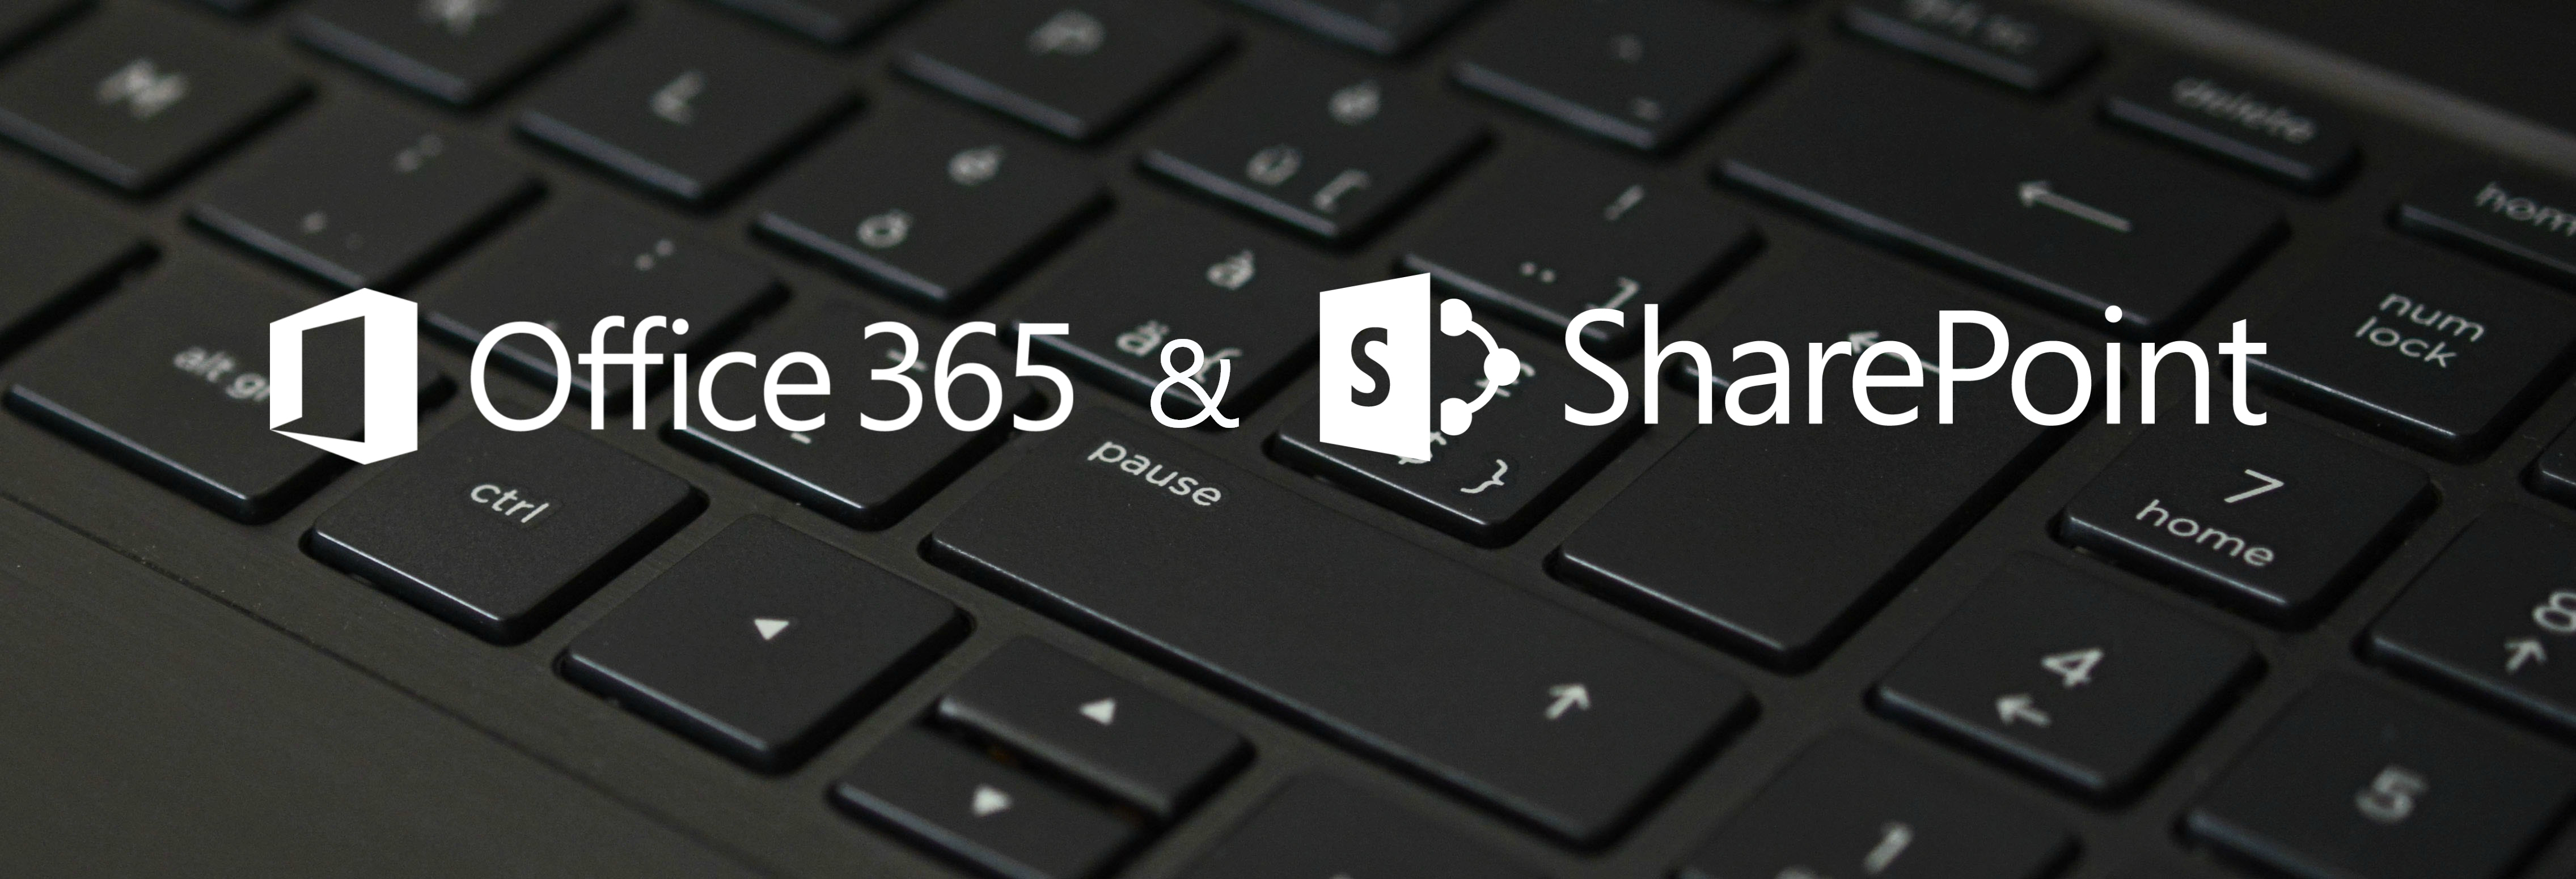 Exceptional Office 365 & SharePoint Development